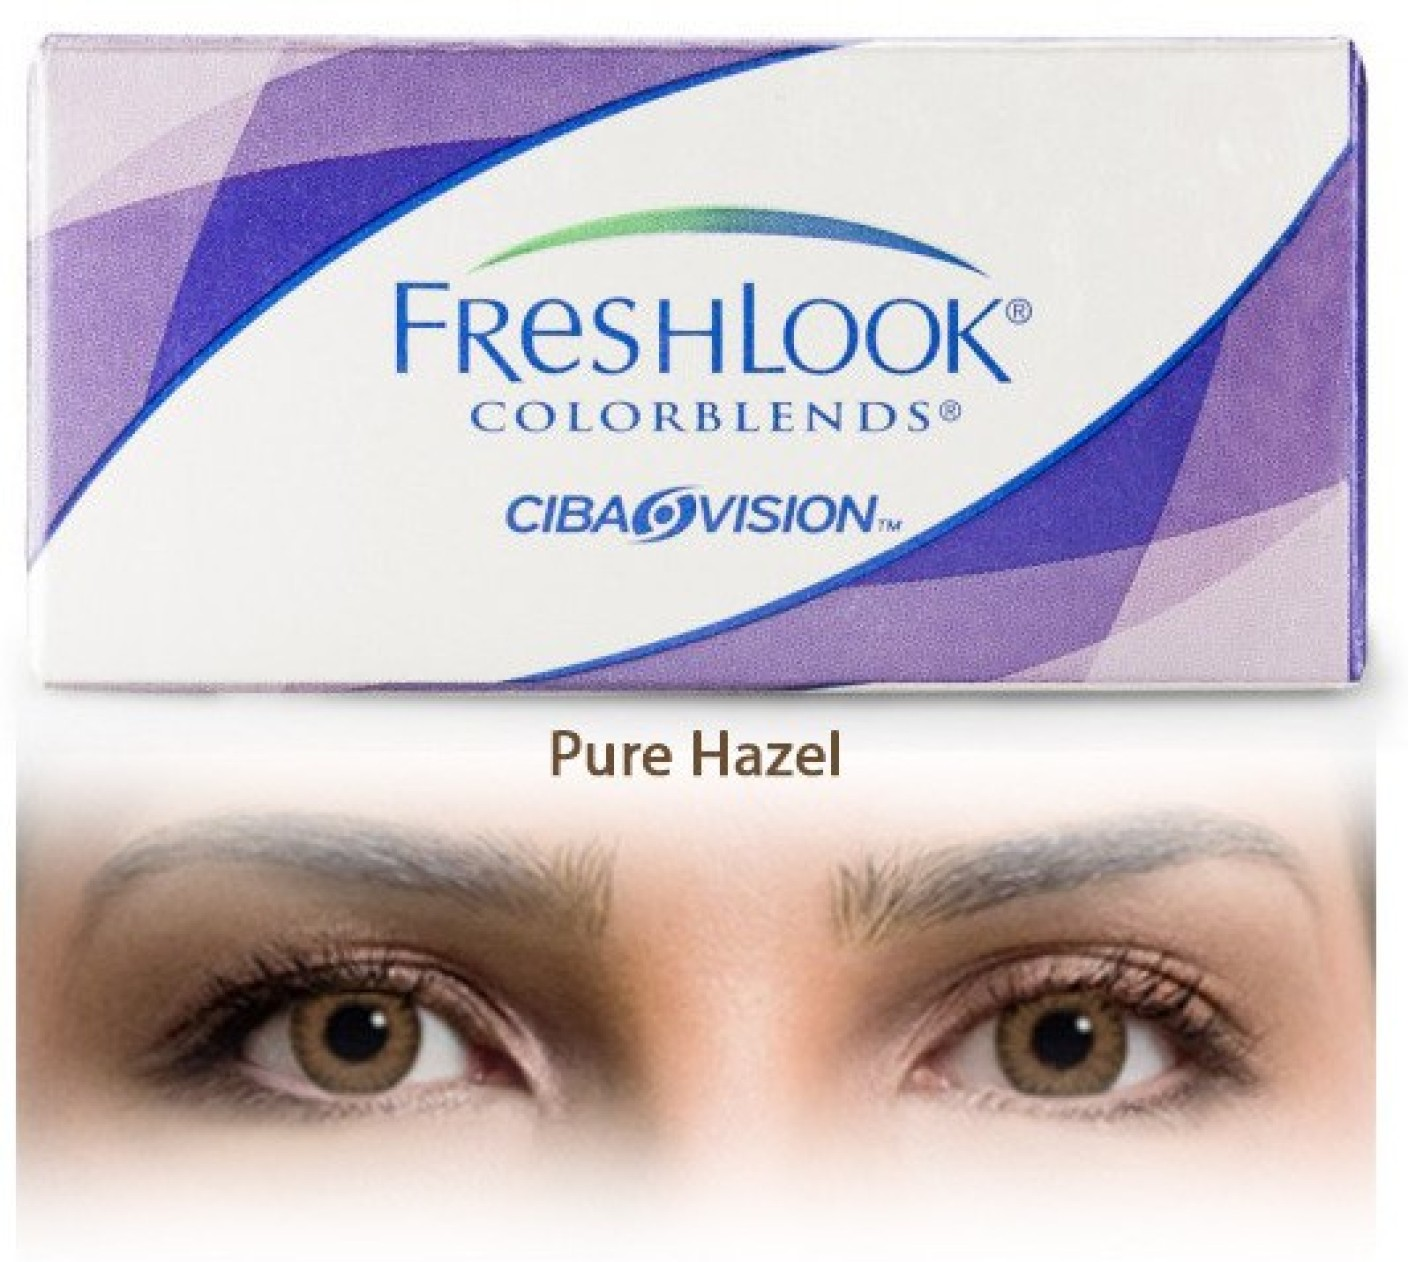 Ciba Vision Freshlook Colorblends Pure Hazel By Visions